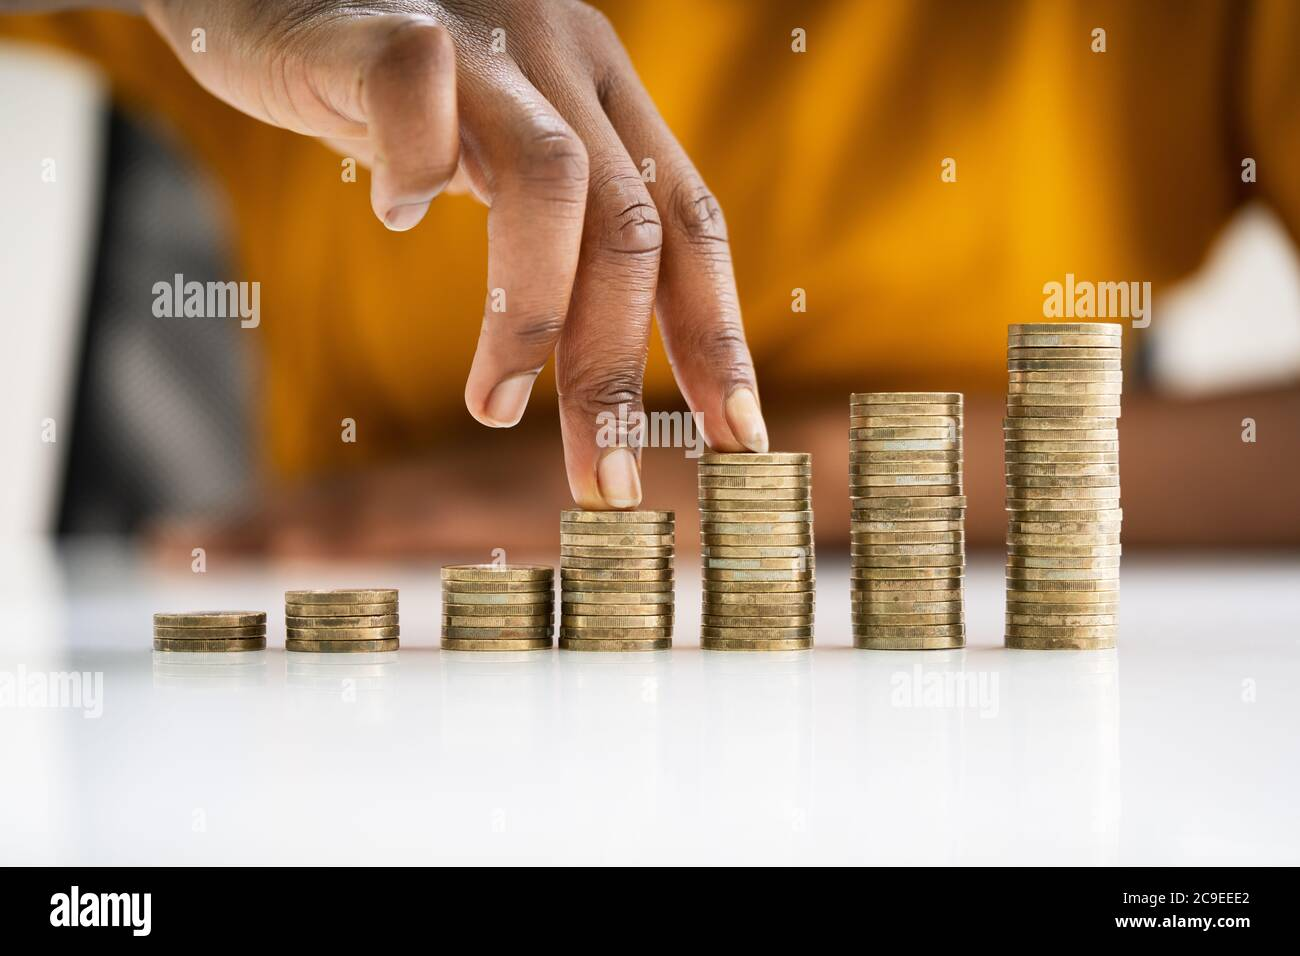 African American Loan Savings And Rich Business Investor Stock Photo